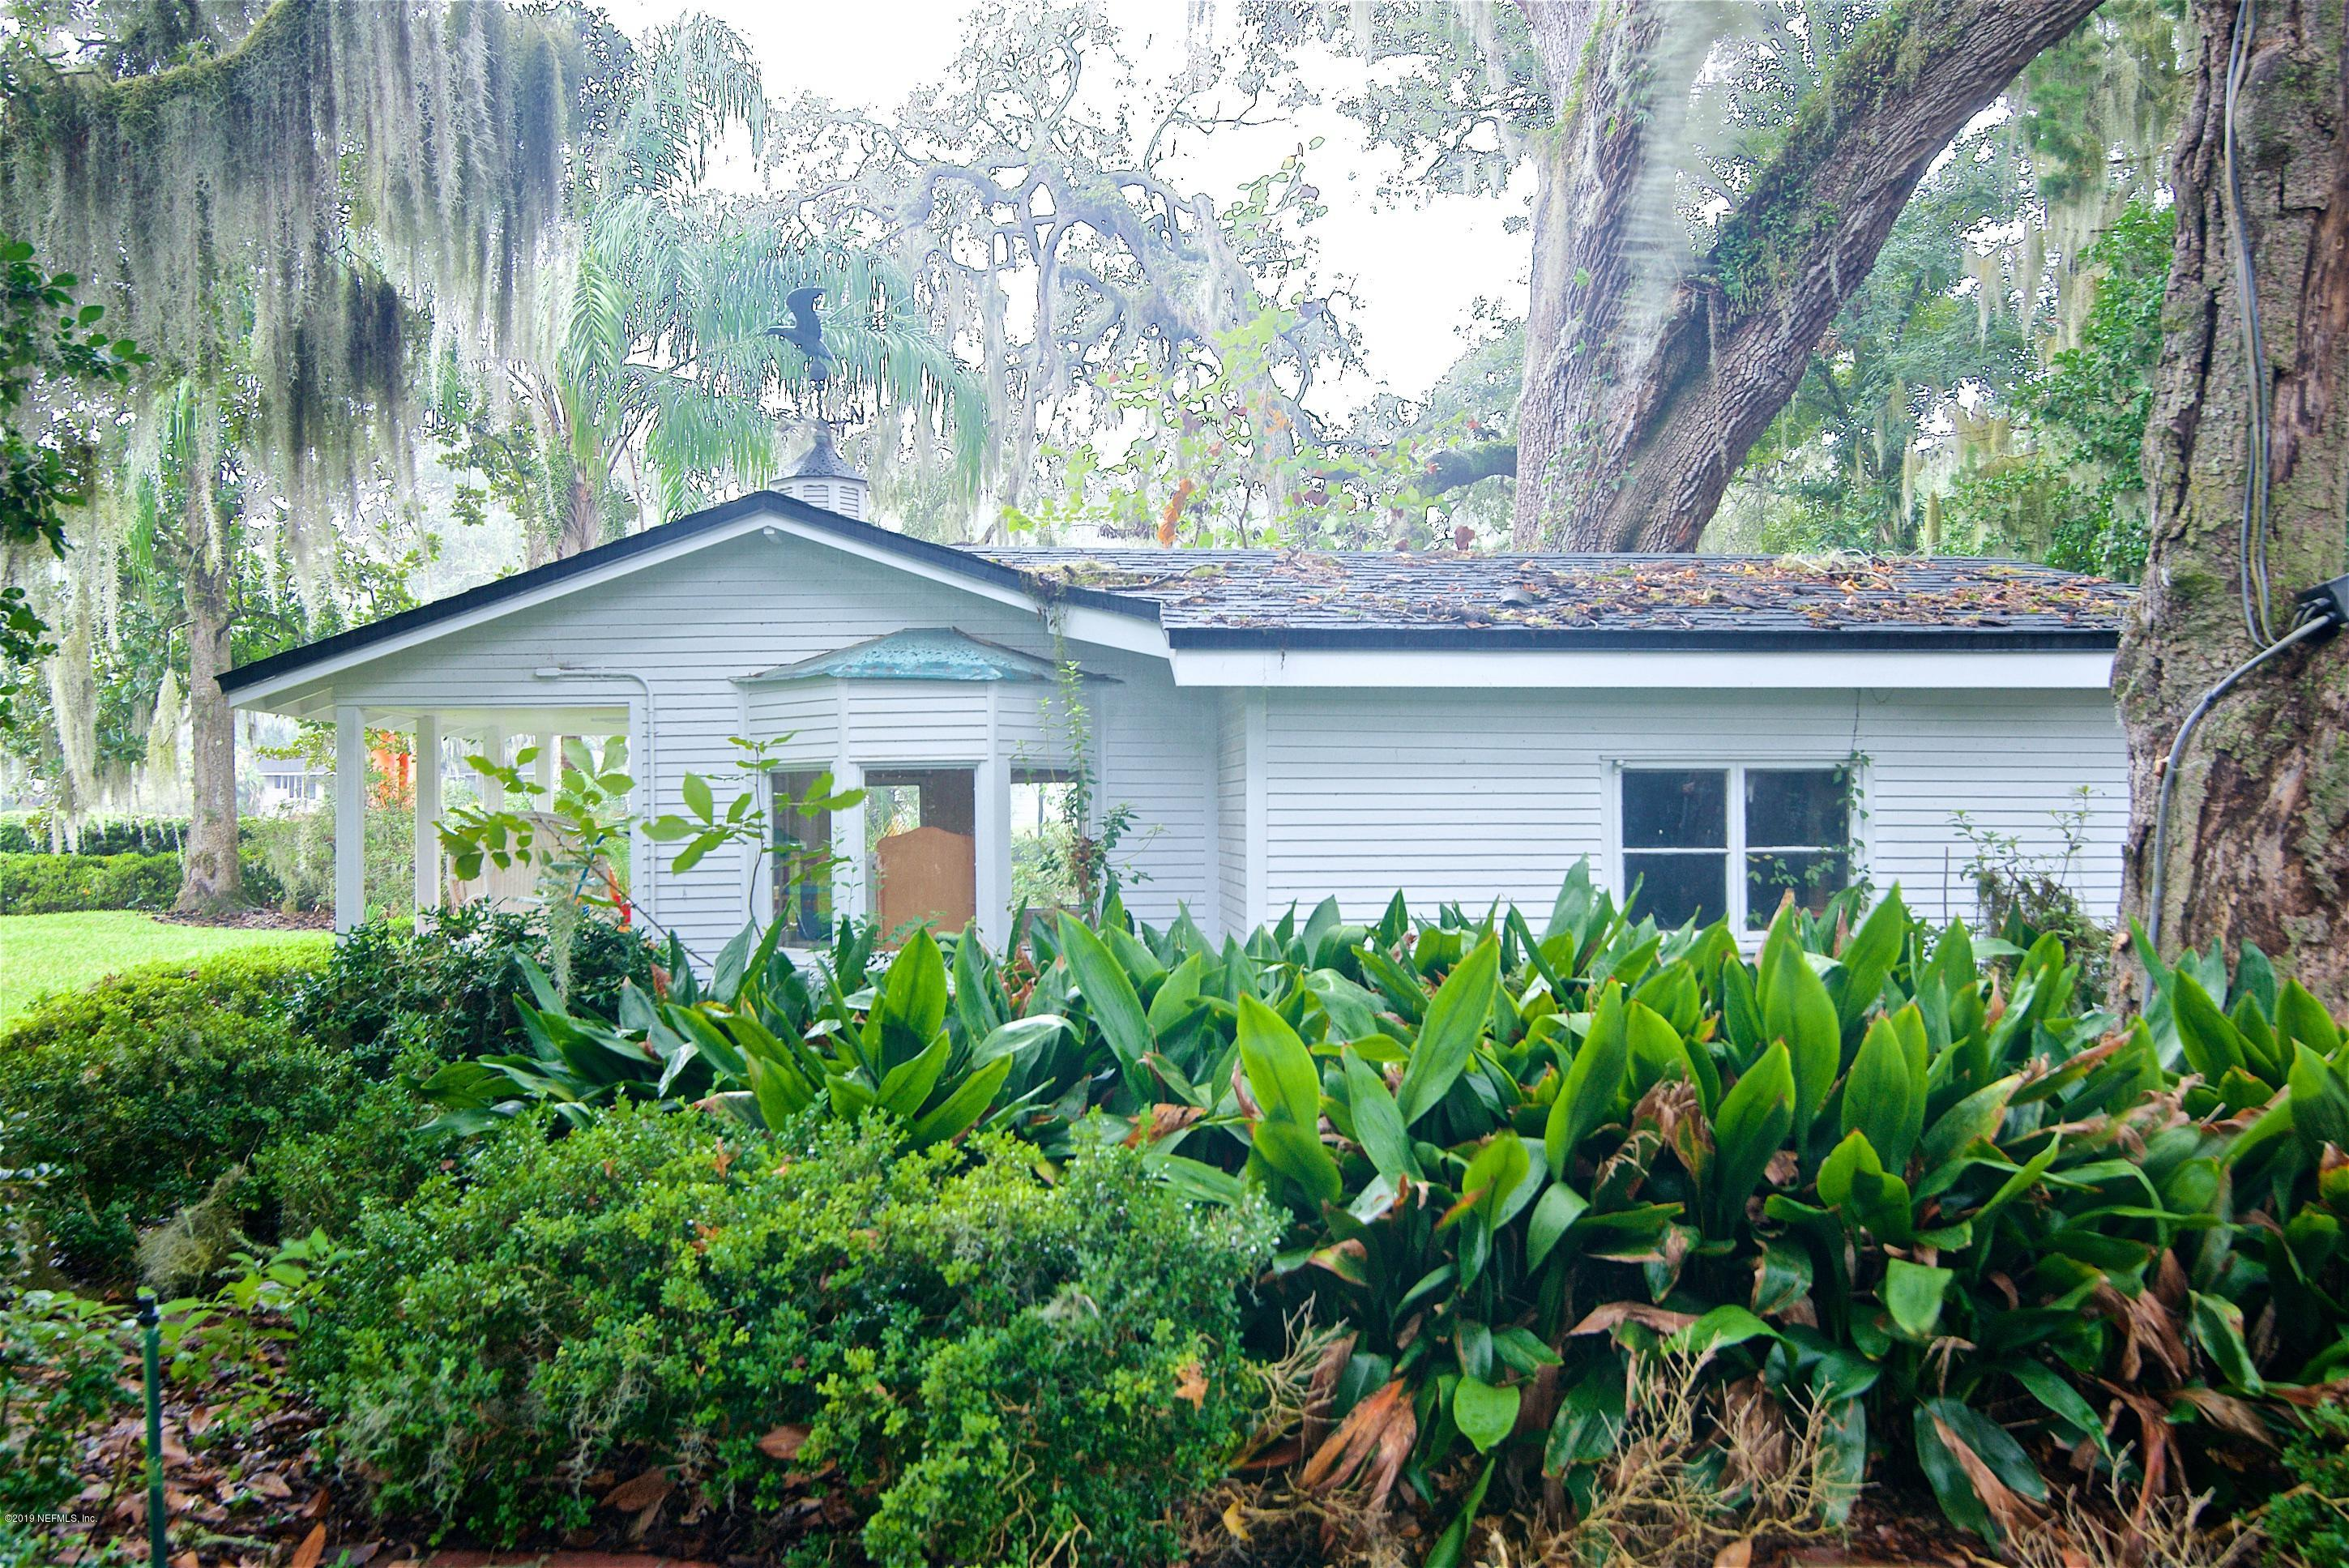 4531 ORTEGA, JACKSONVILLE, FLORIDA 32210, 6 Bedrooms Bedrooms, ,7 BathroomsBathrooms,Residential - single family,For sale,ORTEGA,982921